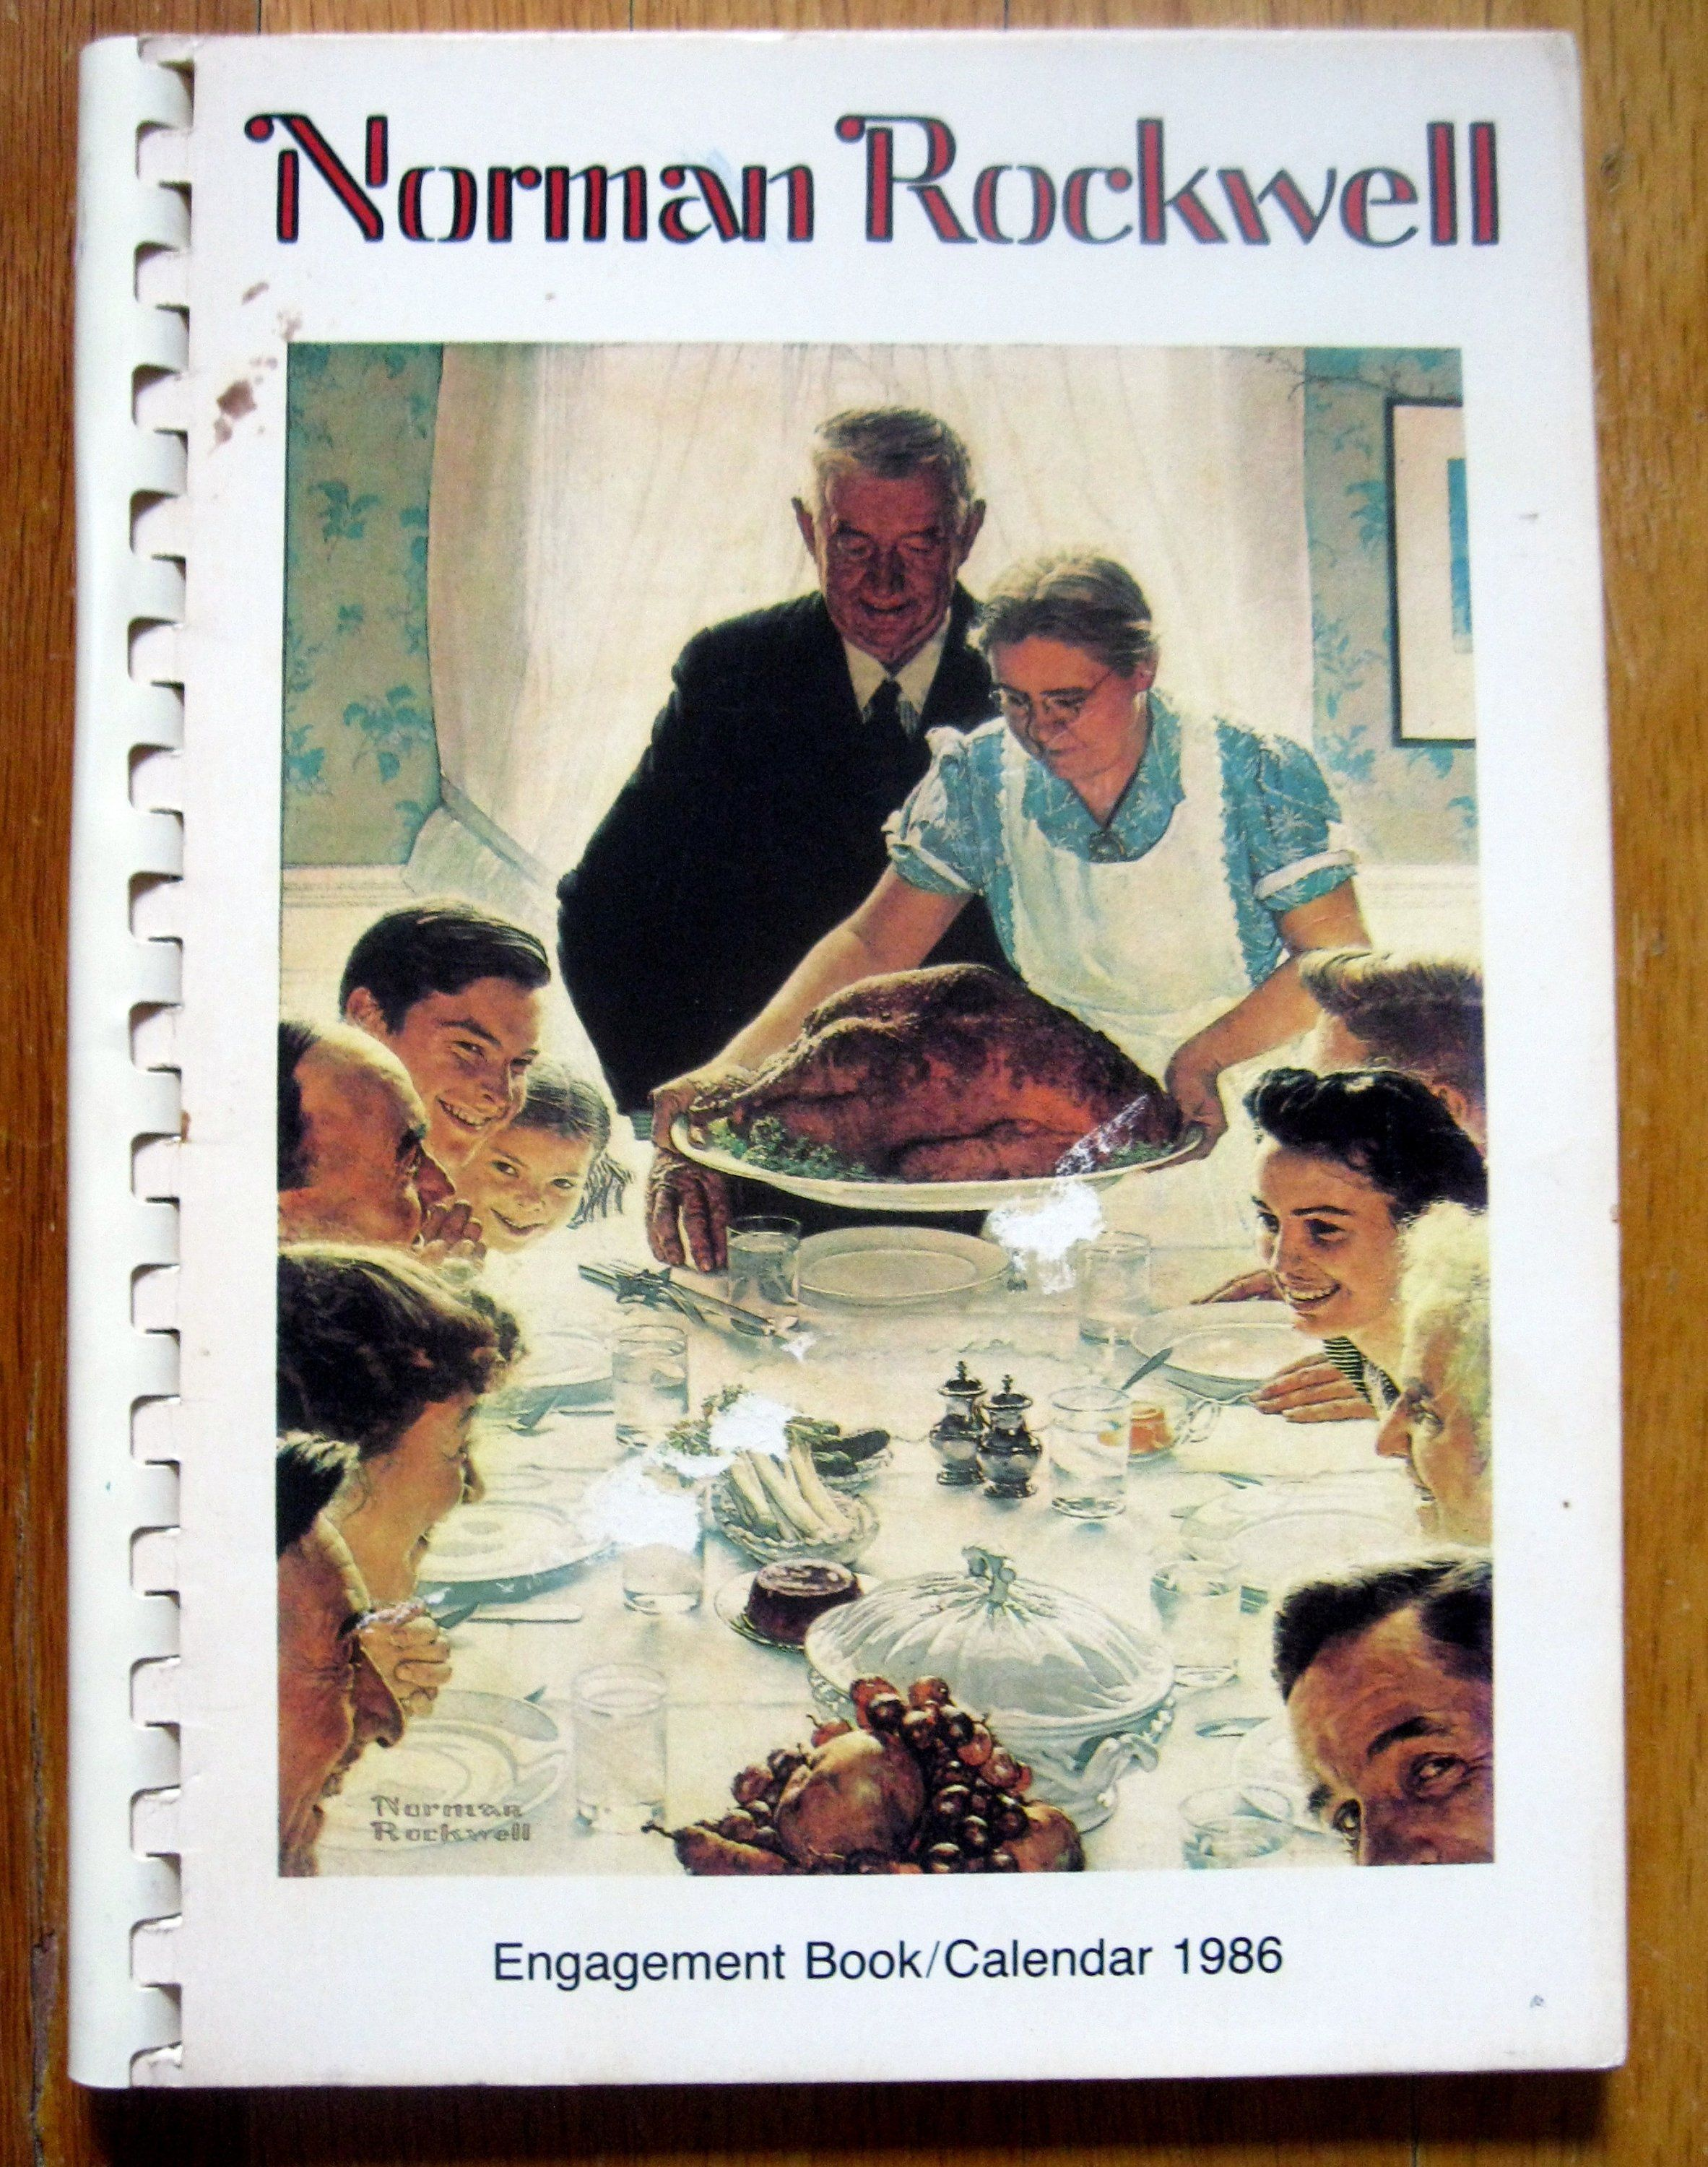 1986 Norman Rockwell Engagement Book Calendar 57 Norman Rockwell